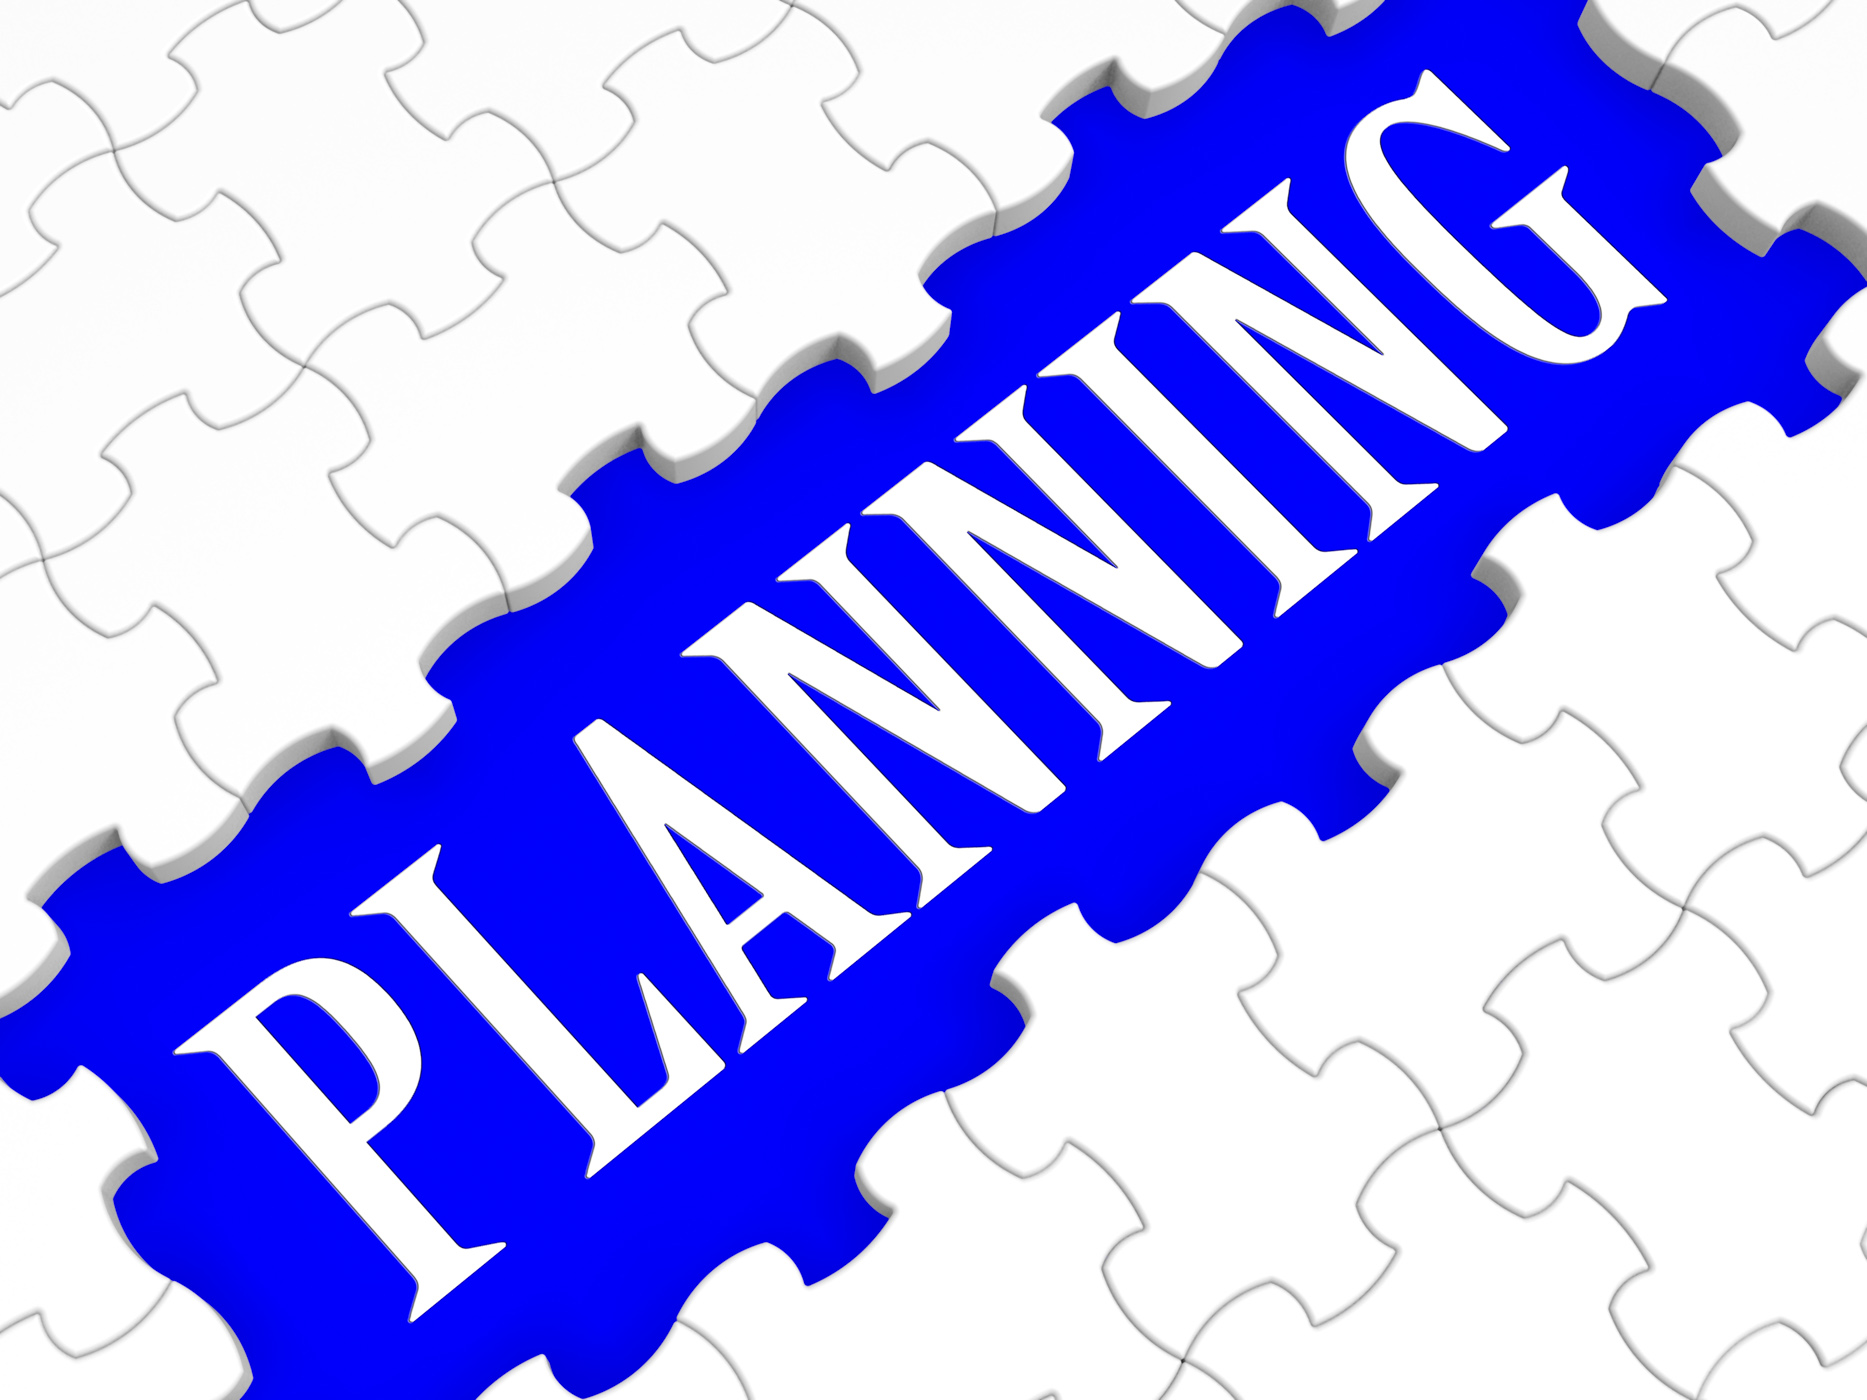 Planning puzzle showing intention and goals photo